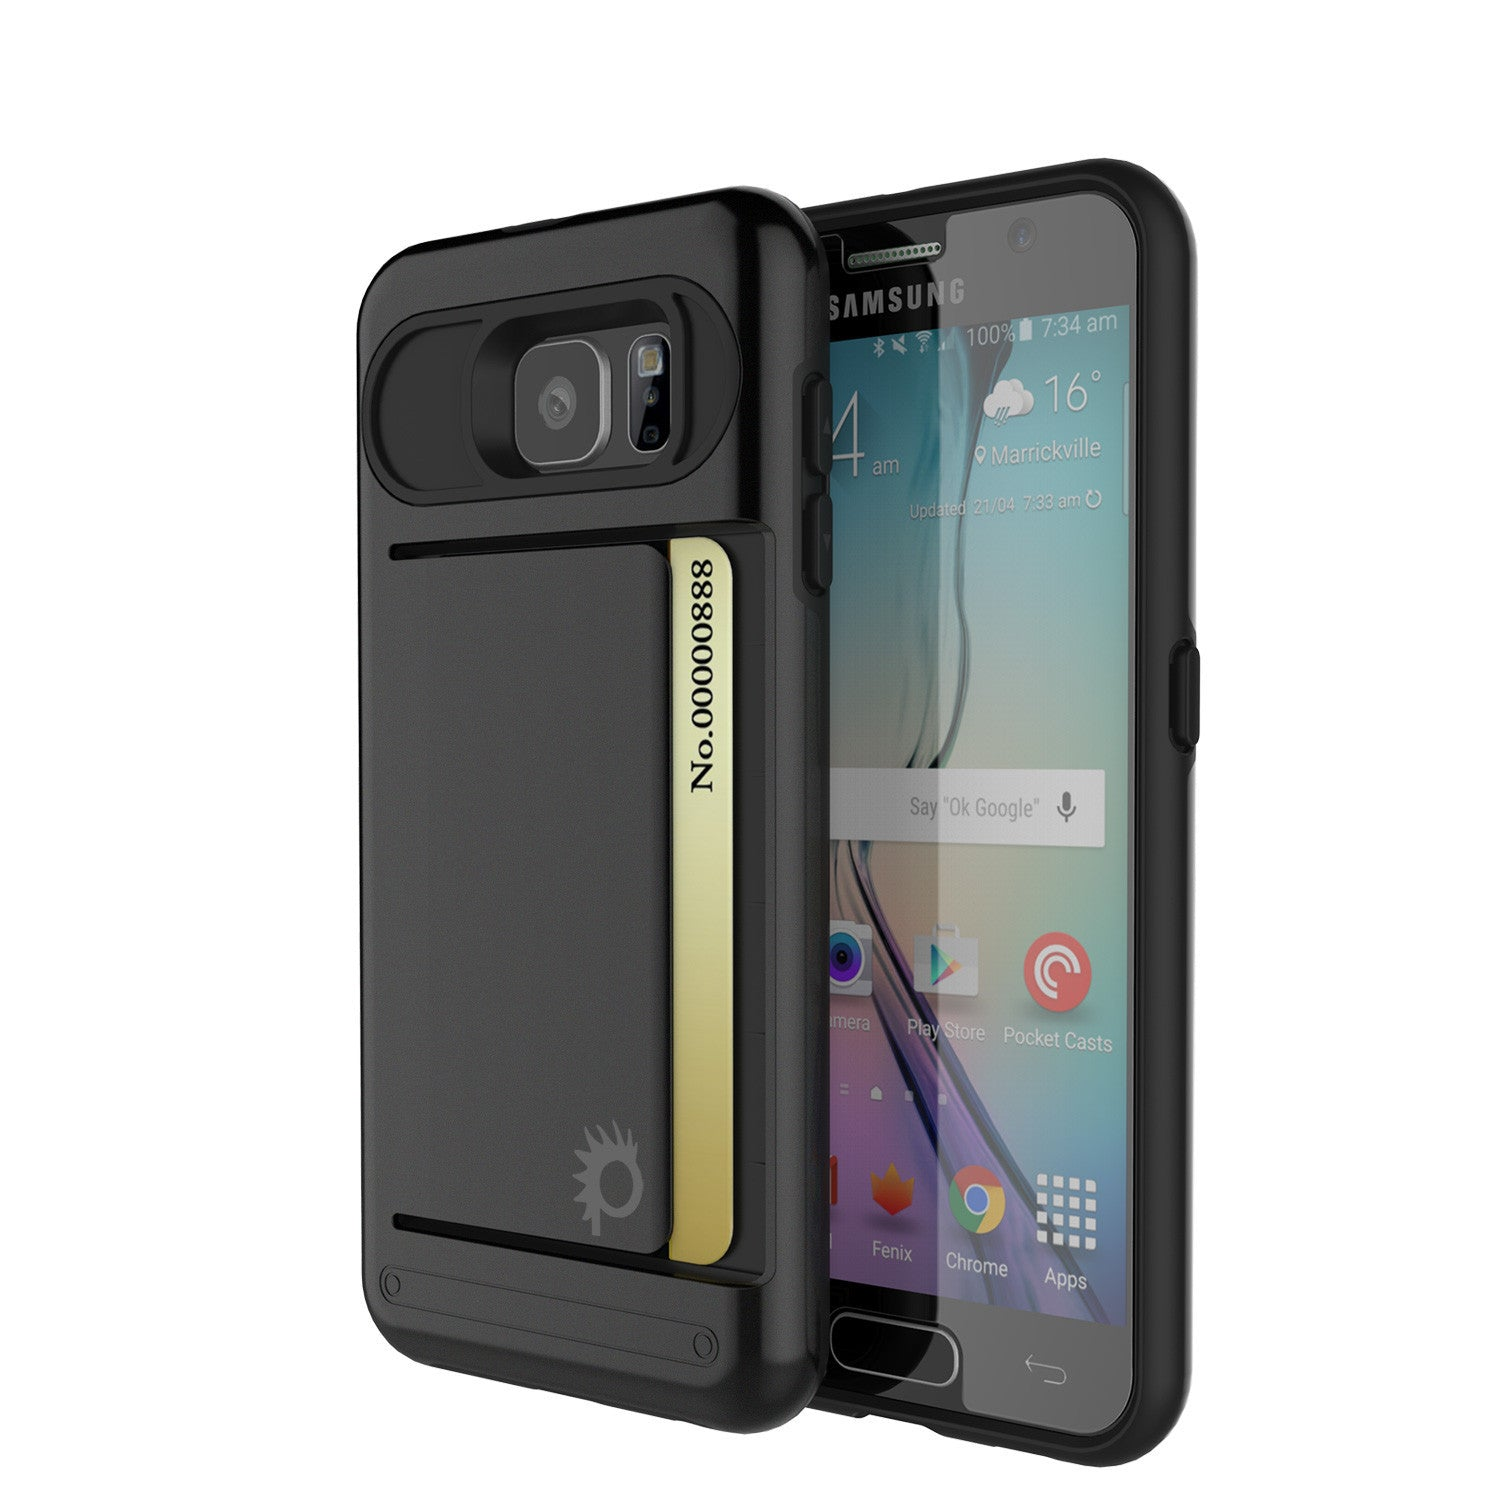 Galaxy S6 EDGE Plus Case PunkCase CLUTCH Black Series Slim Armor Soft Cover Case w/ Screen Protector